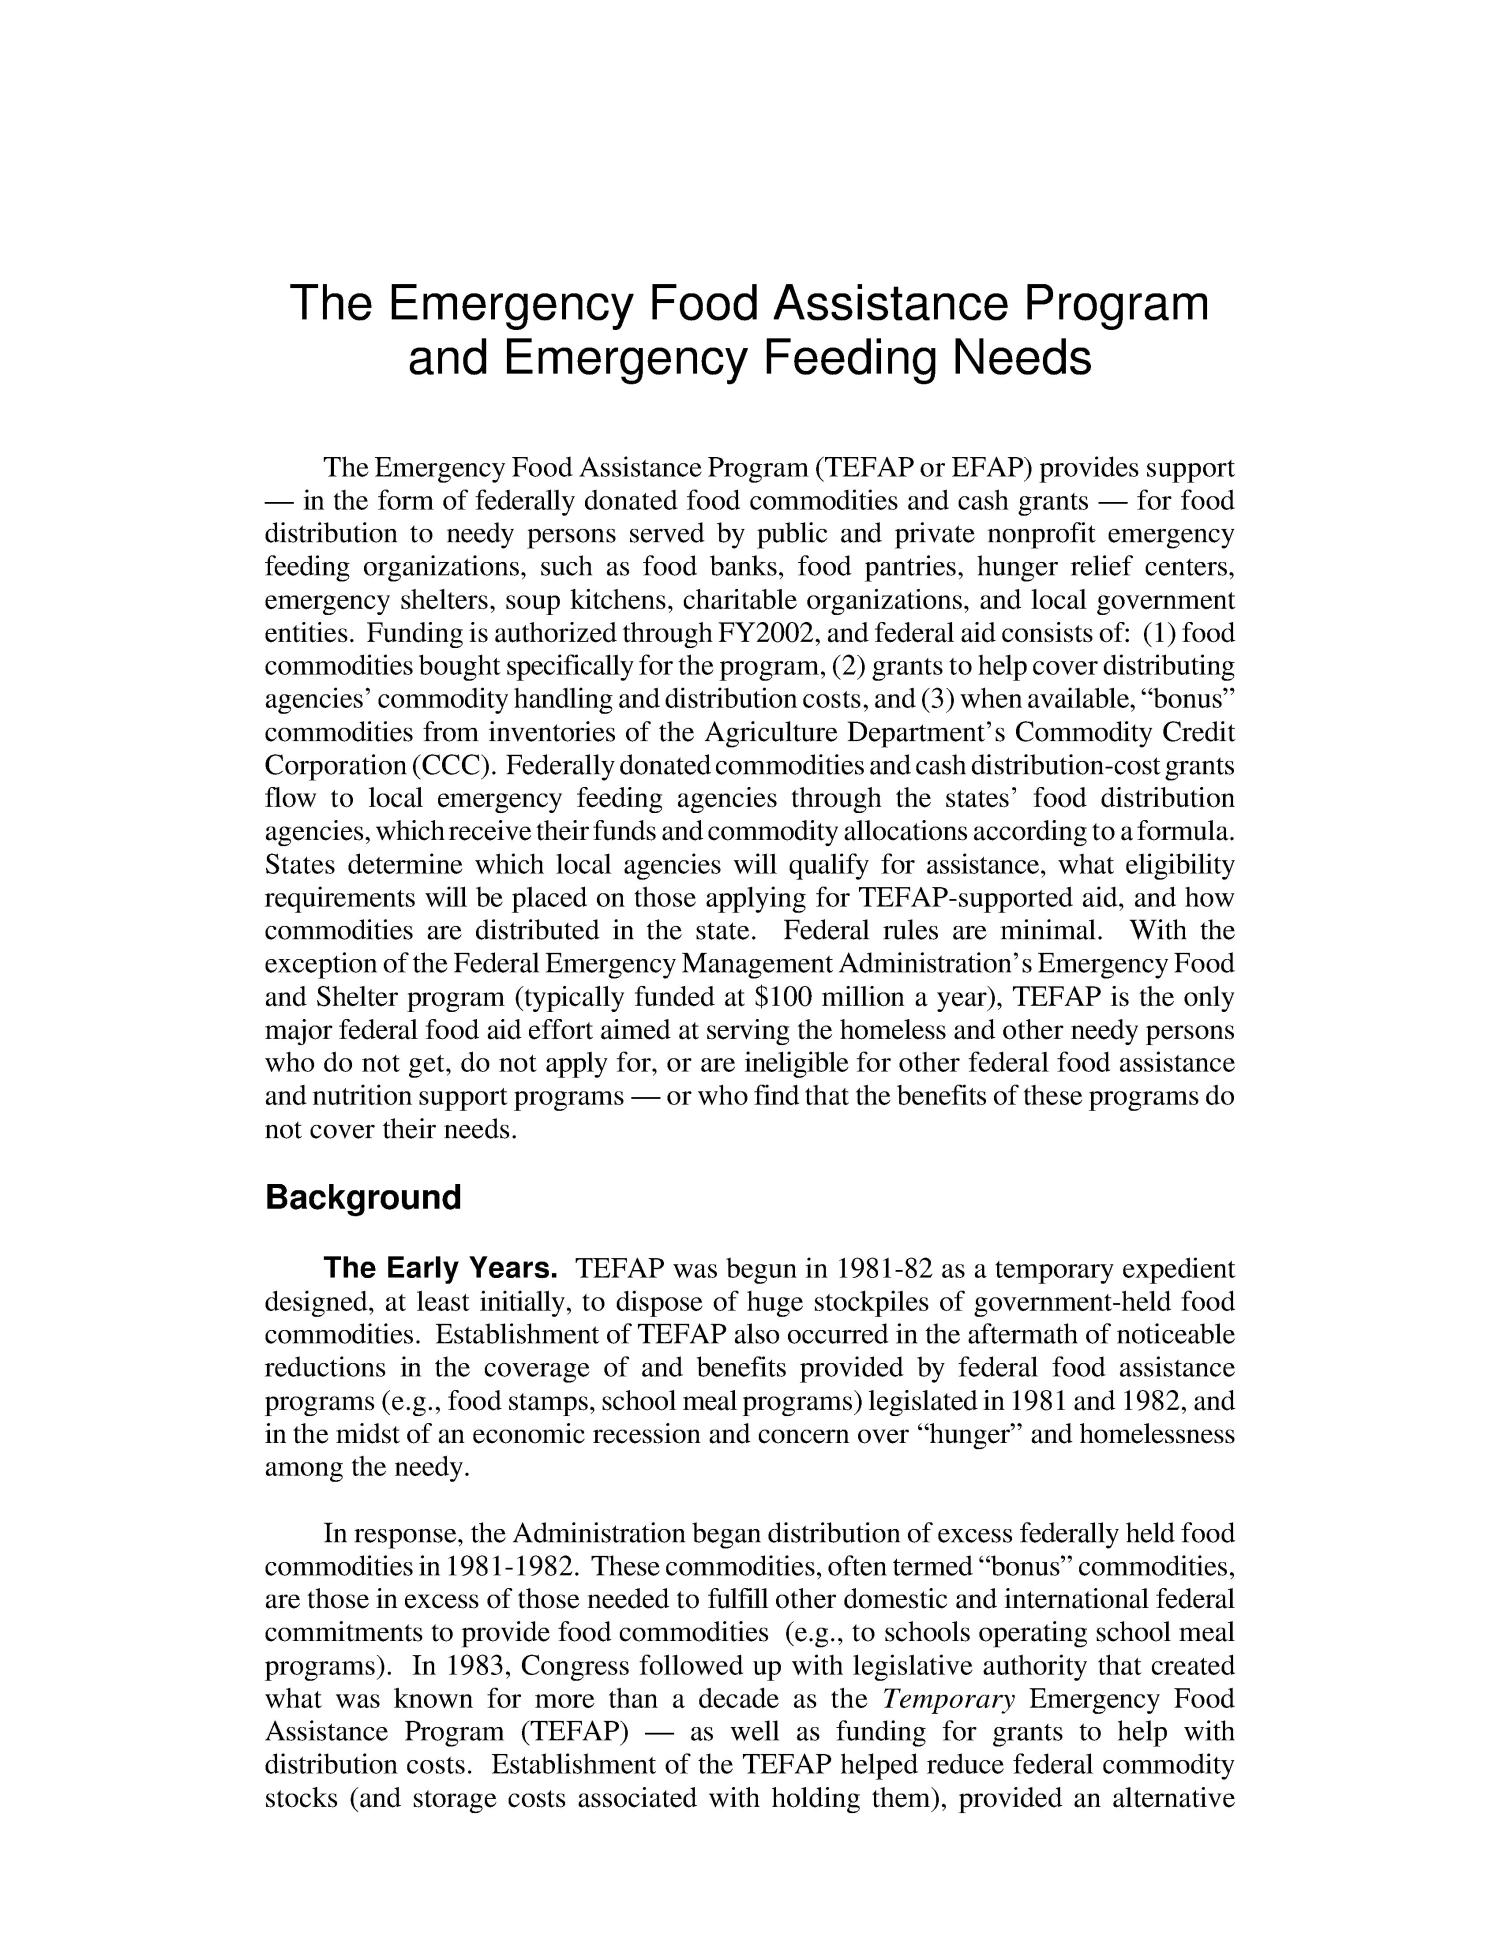 The Emergency Food Assistance Program and Emergency Feeding Needs                                                                                                      [Sequence #]: 4 of 20